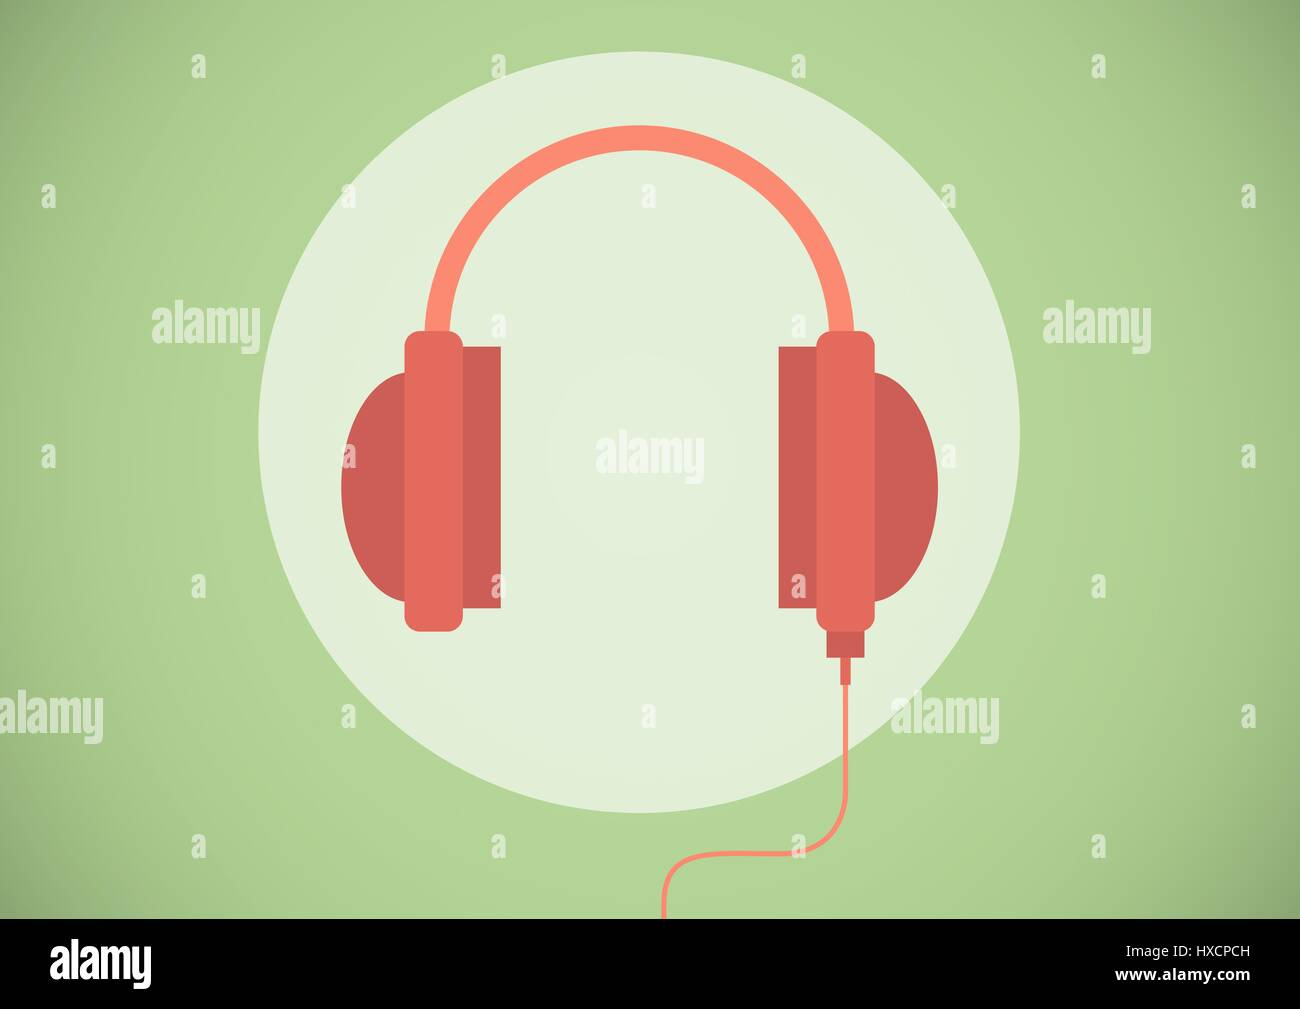 Digital composite of Red headphone illustration icon in cirlce against green background - Stock Image